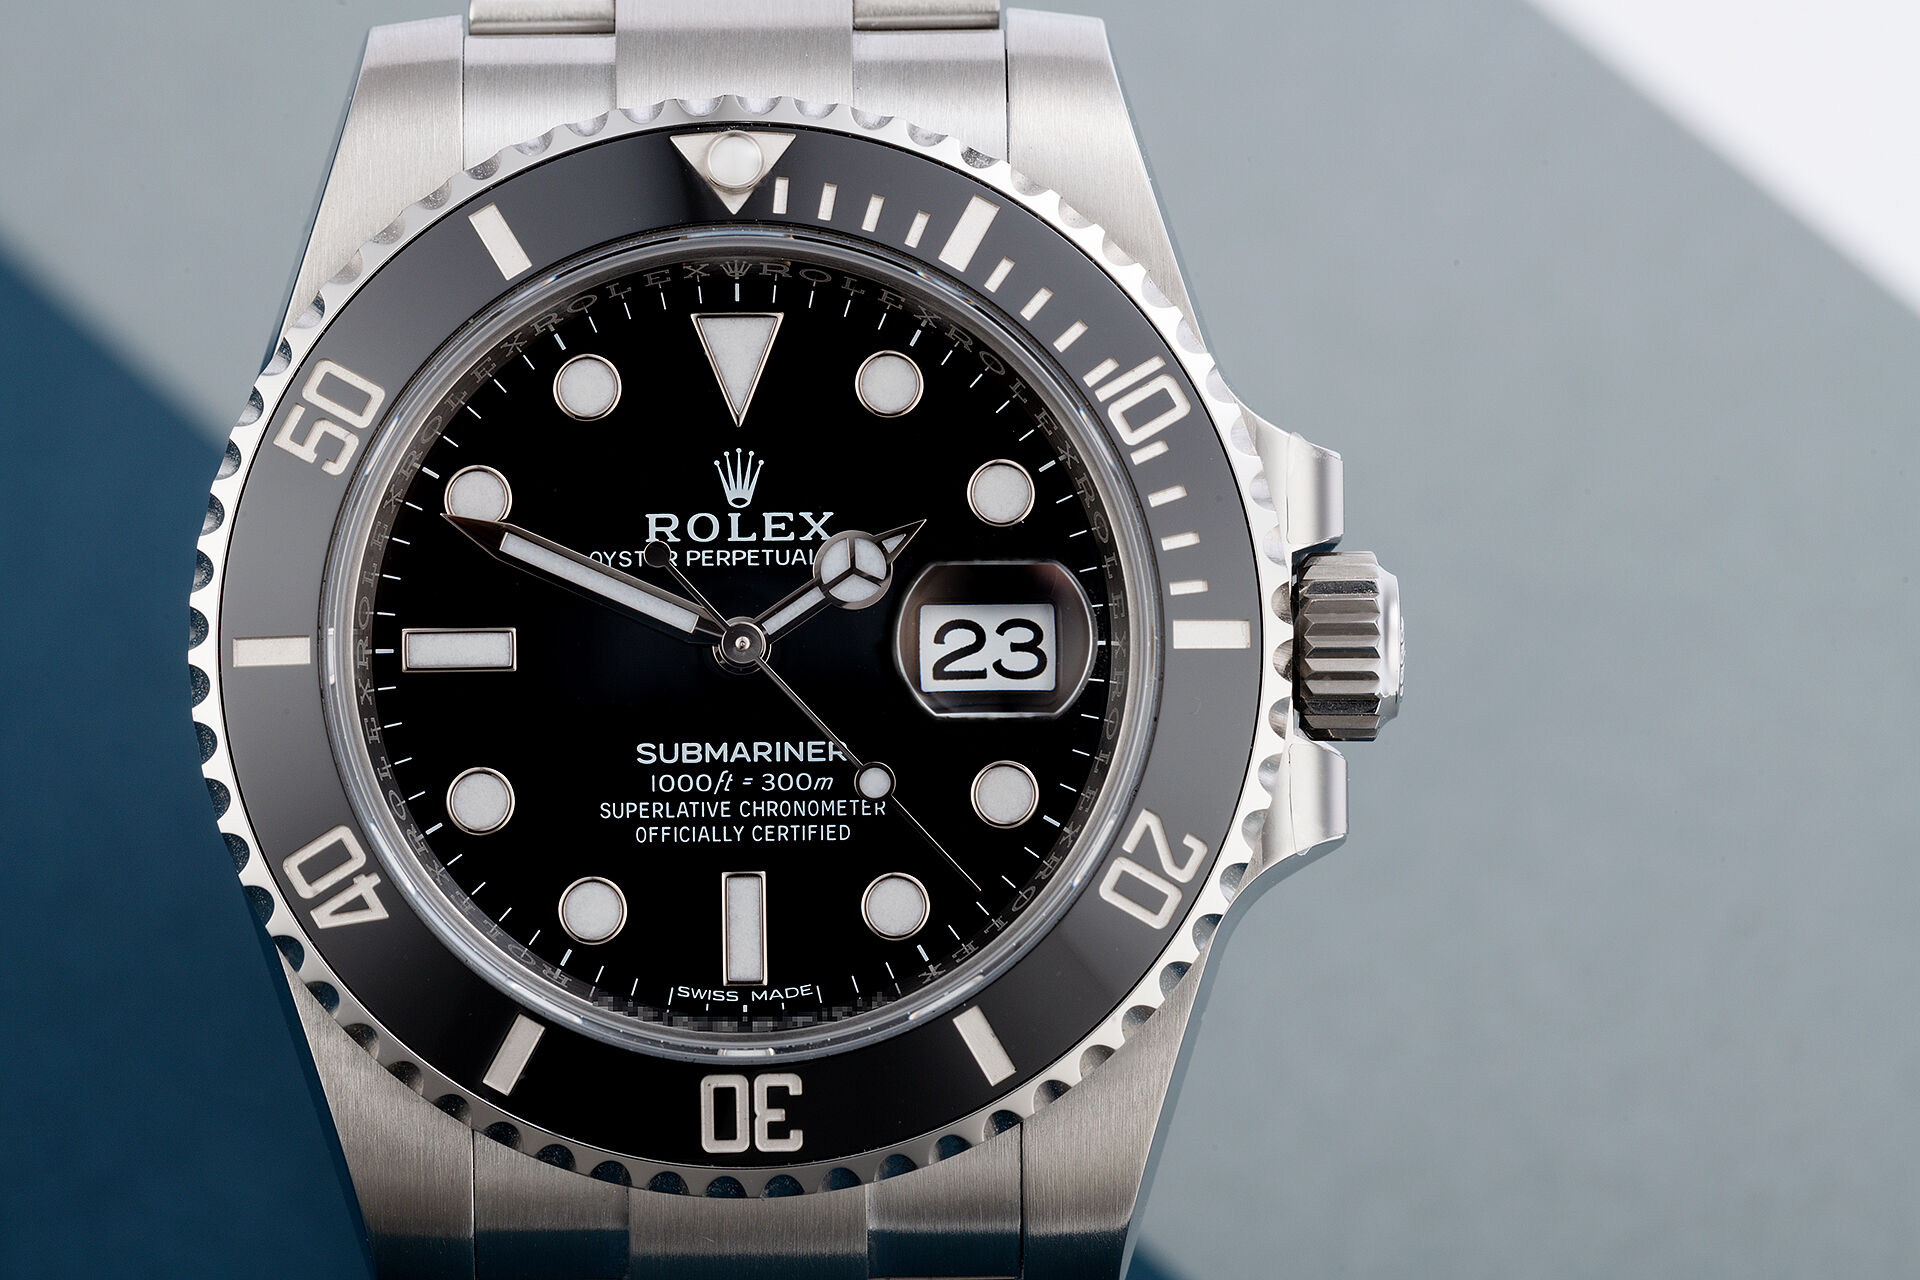 ref 116610LN | 5 Year Warranty | Rolex Submariner Date